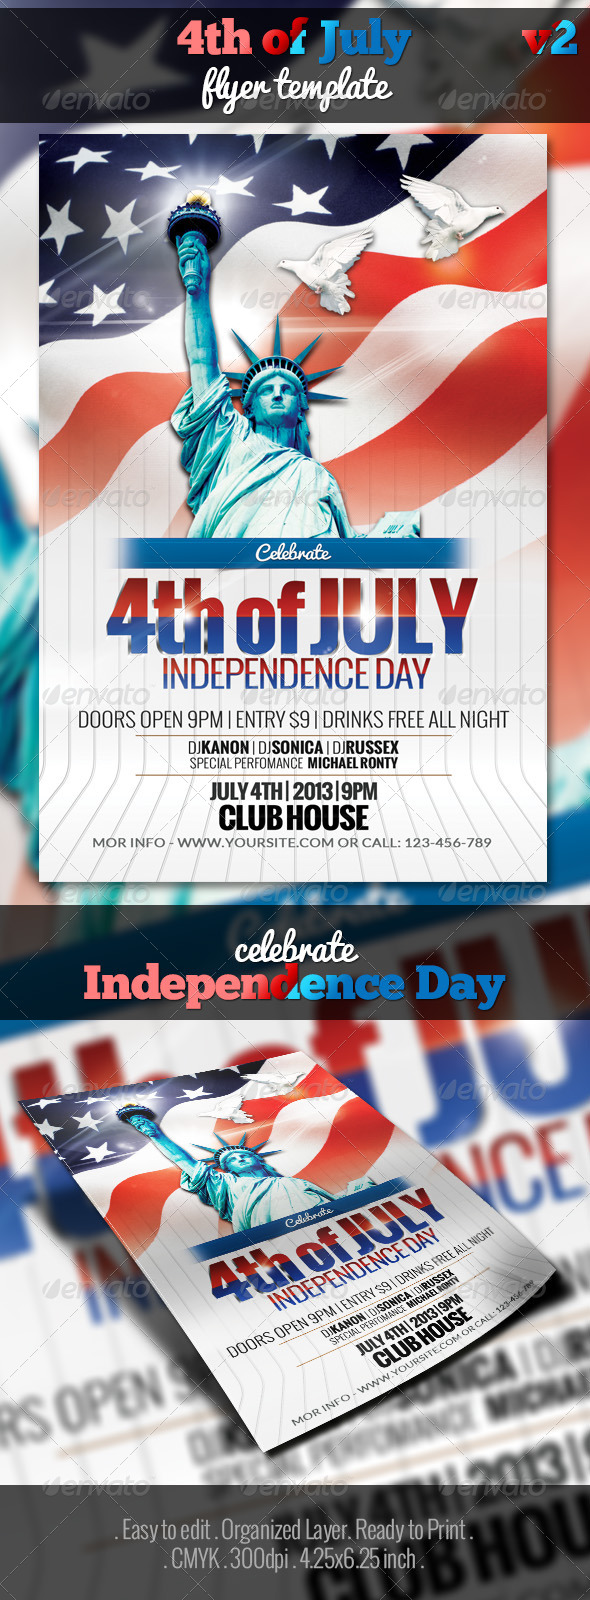 GraphicRiver 4th of July Flyer Template v2 5034510